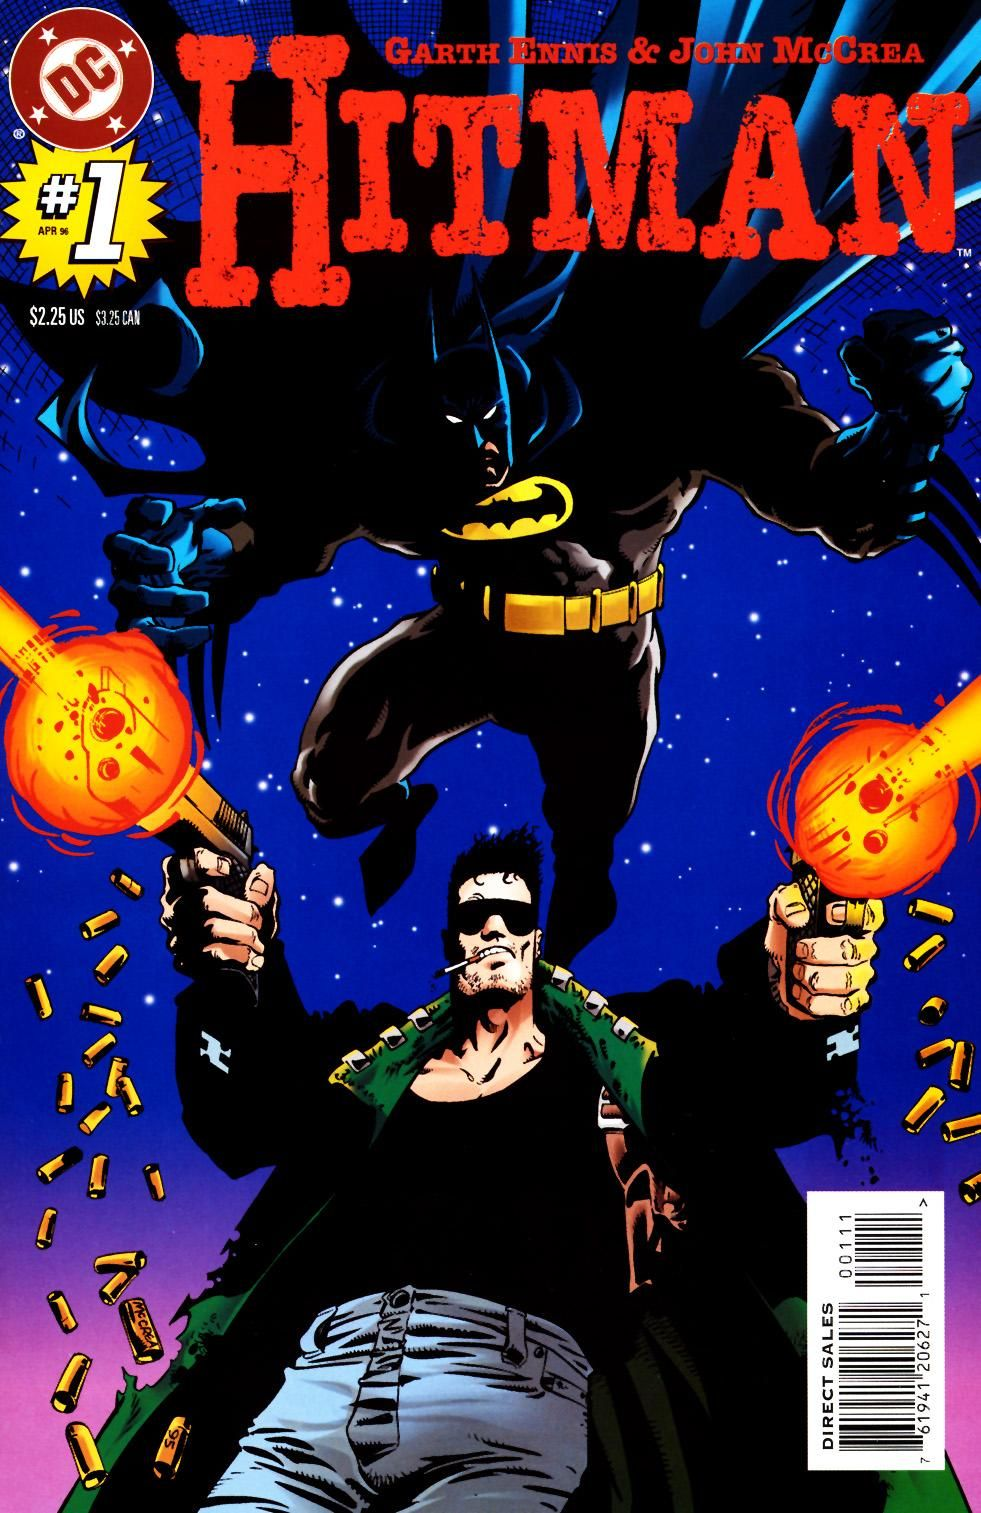 Alan ford gruppo t n t ubc enciclopedia online del fumetto - Hitman A Rage In Arkham By Garth Ennis The Characters Presented In This Comic Come Off Very Believable Even For The 90s The Dialogue Is Snappy